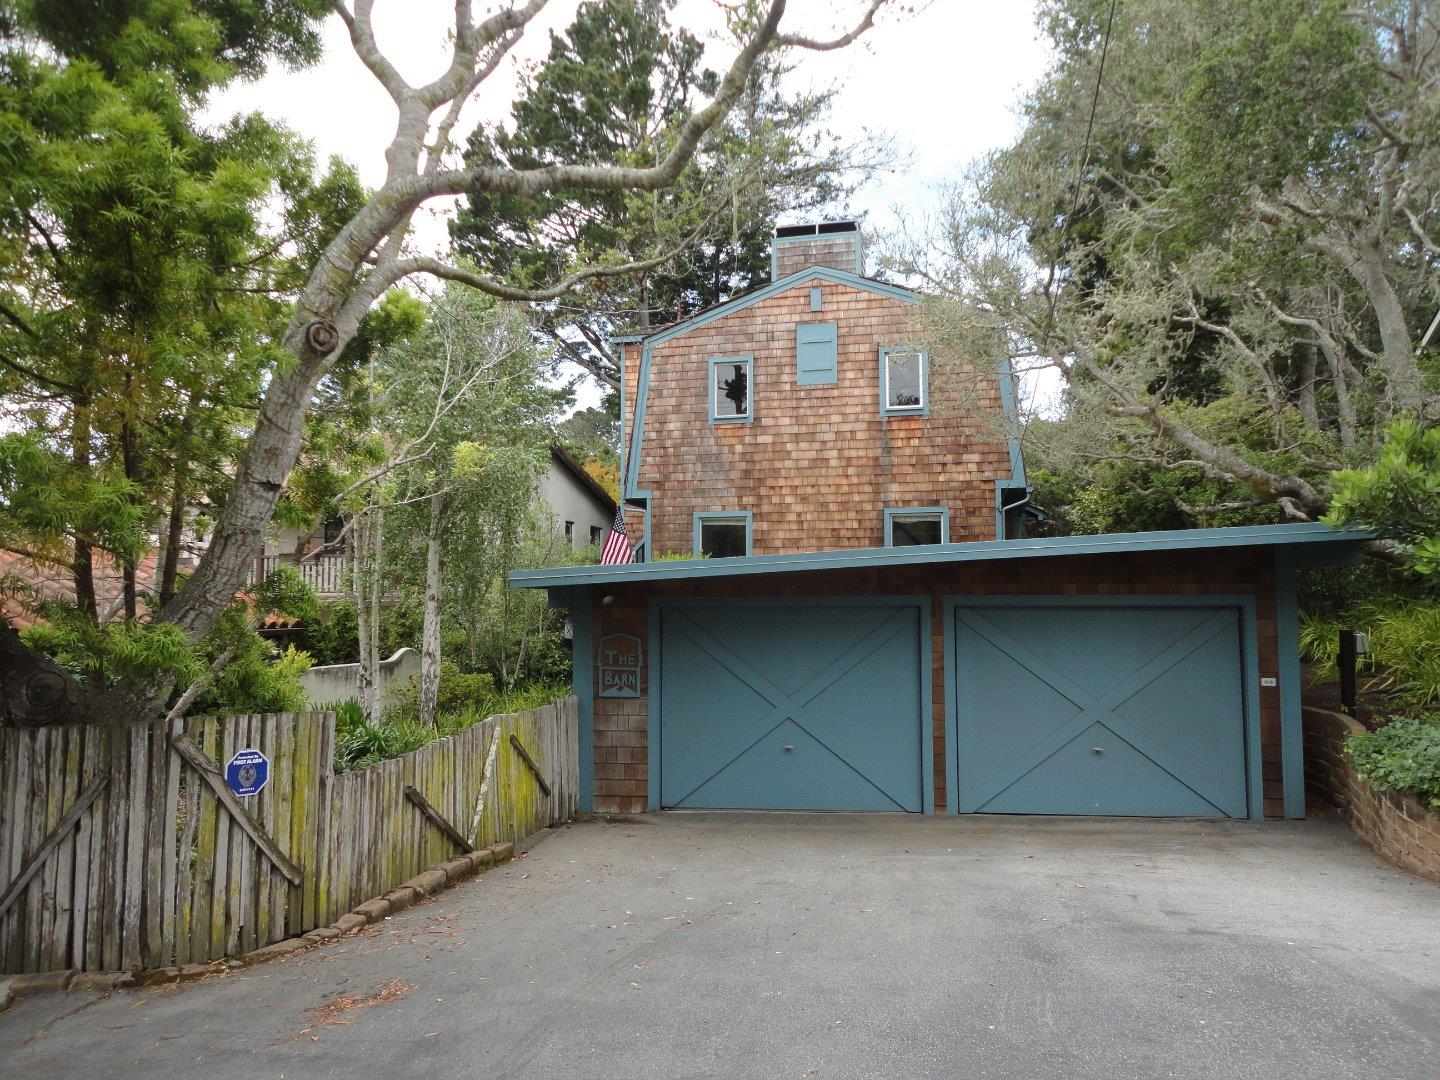 Property for sale at 2 NW Mission ST, Carmel,  California 93921